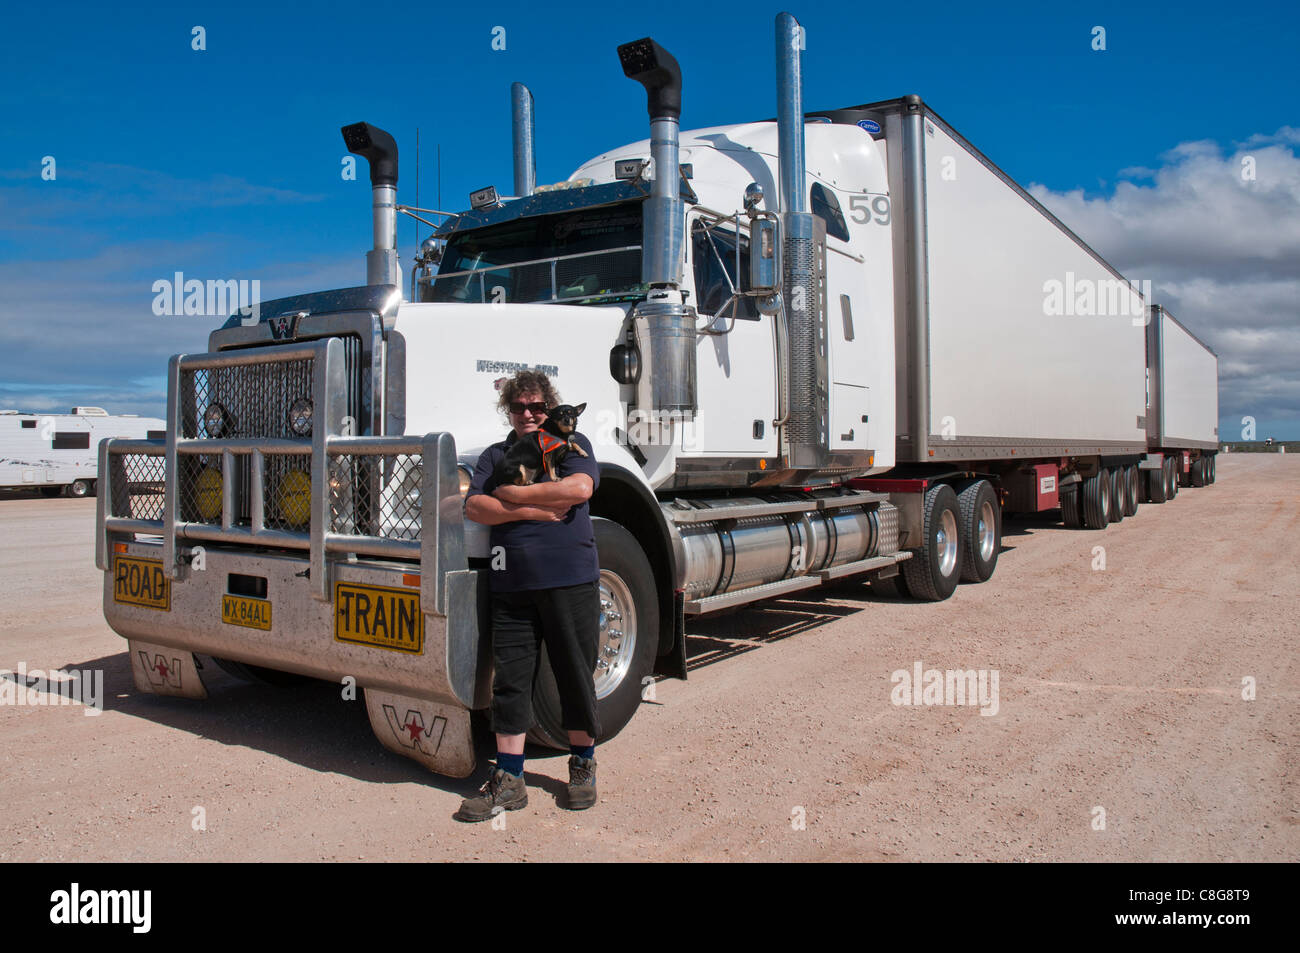 http://c8.alamy.com/comp/C8G8T9/woman-road-train-driver-with-truck-carrying-75-tonnes-of-tomatoes-C8G8T9.jpg